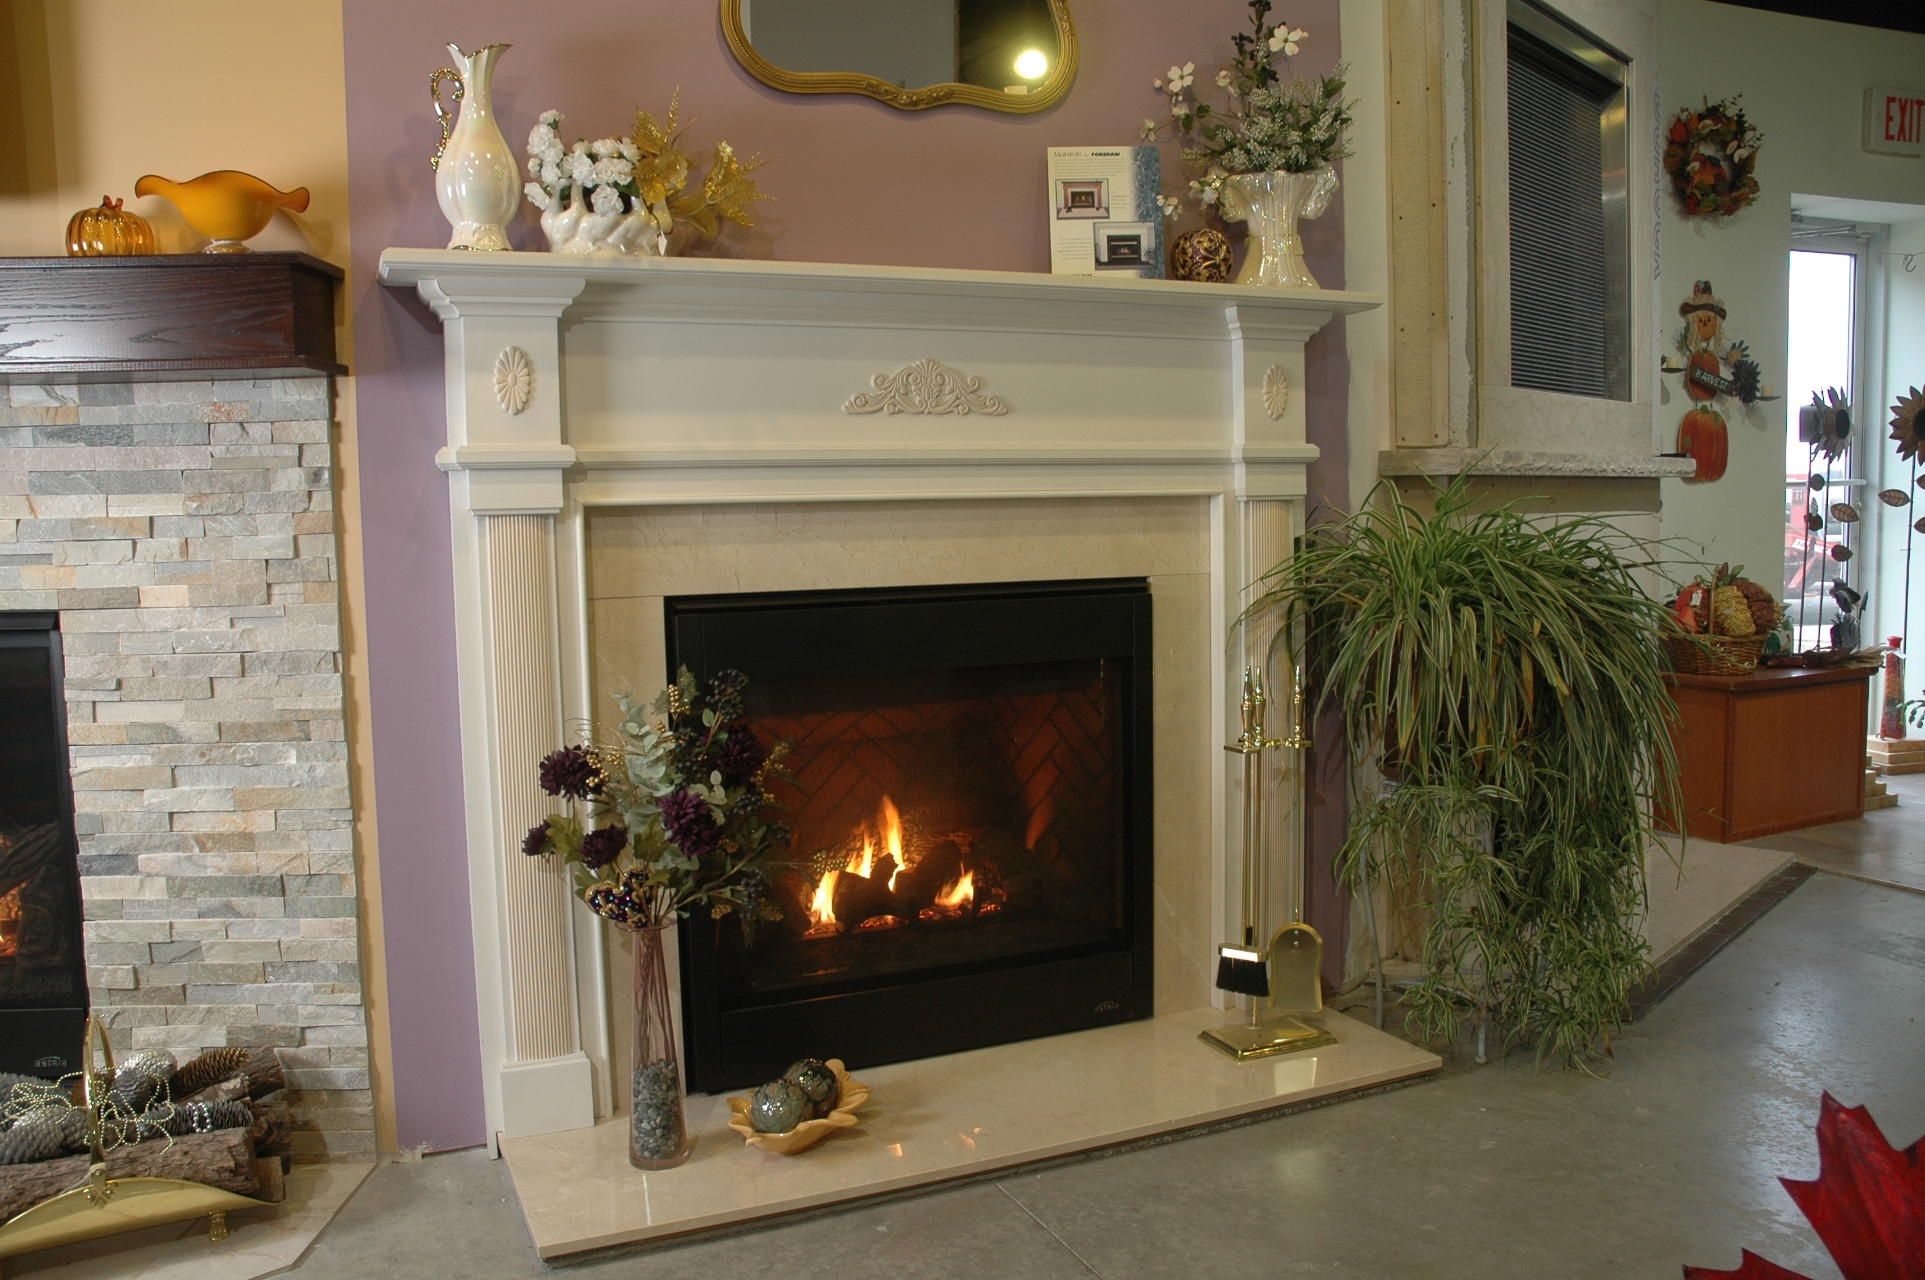 Direct Vent Gas Fireplace Ratings The Fireplace Professionals Product Categories Gas Fireplaces